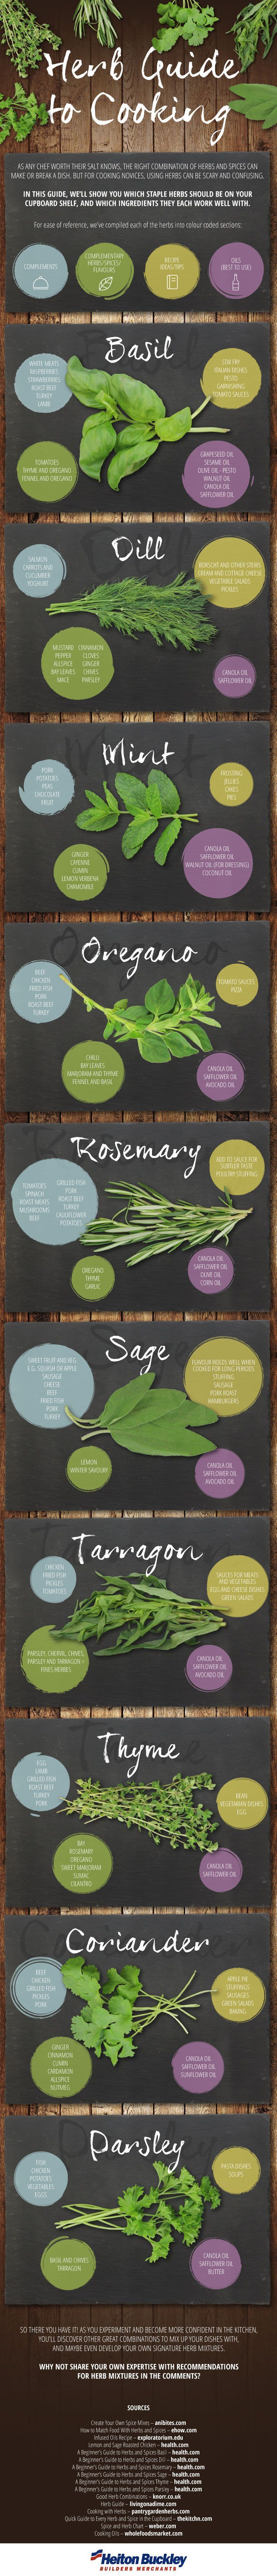 warm winter coat A Guide To Using Herbs When You Cook  Infographic